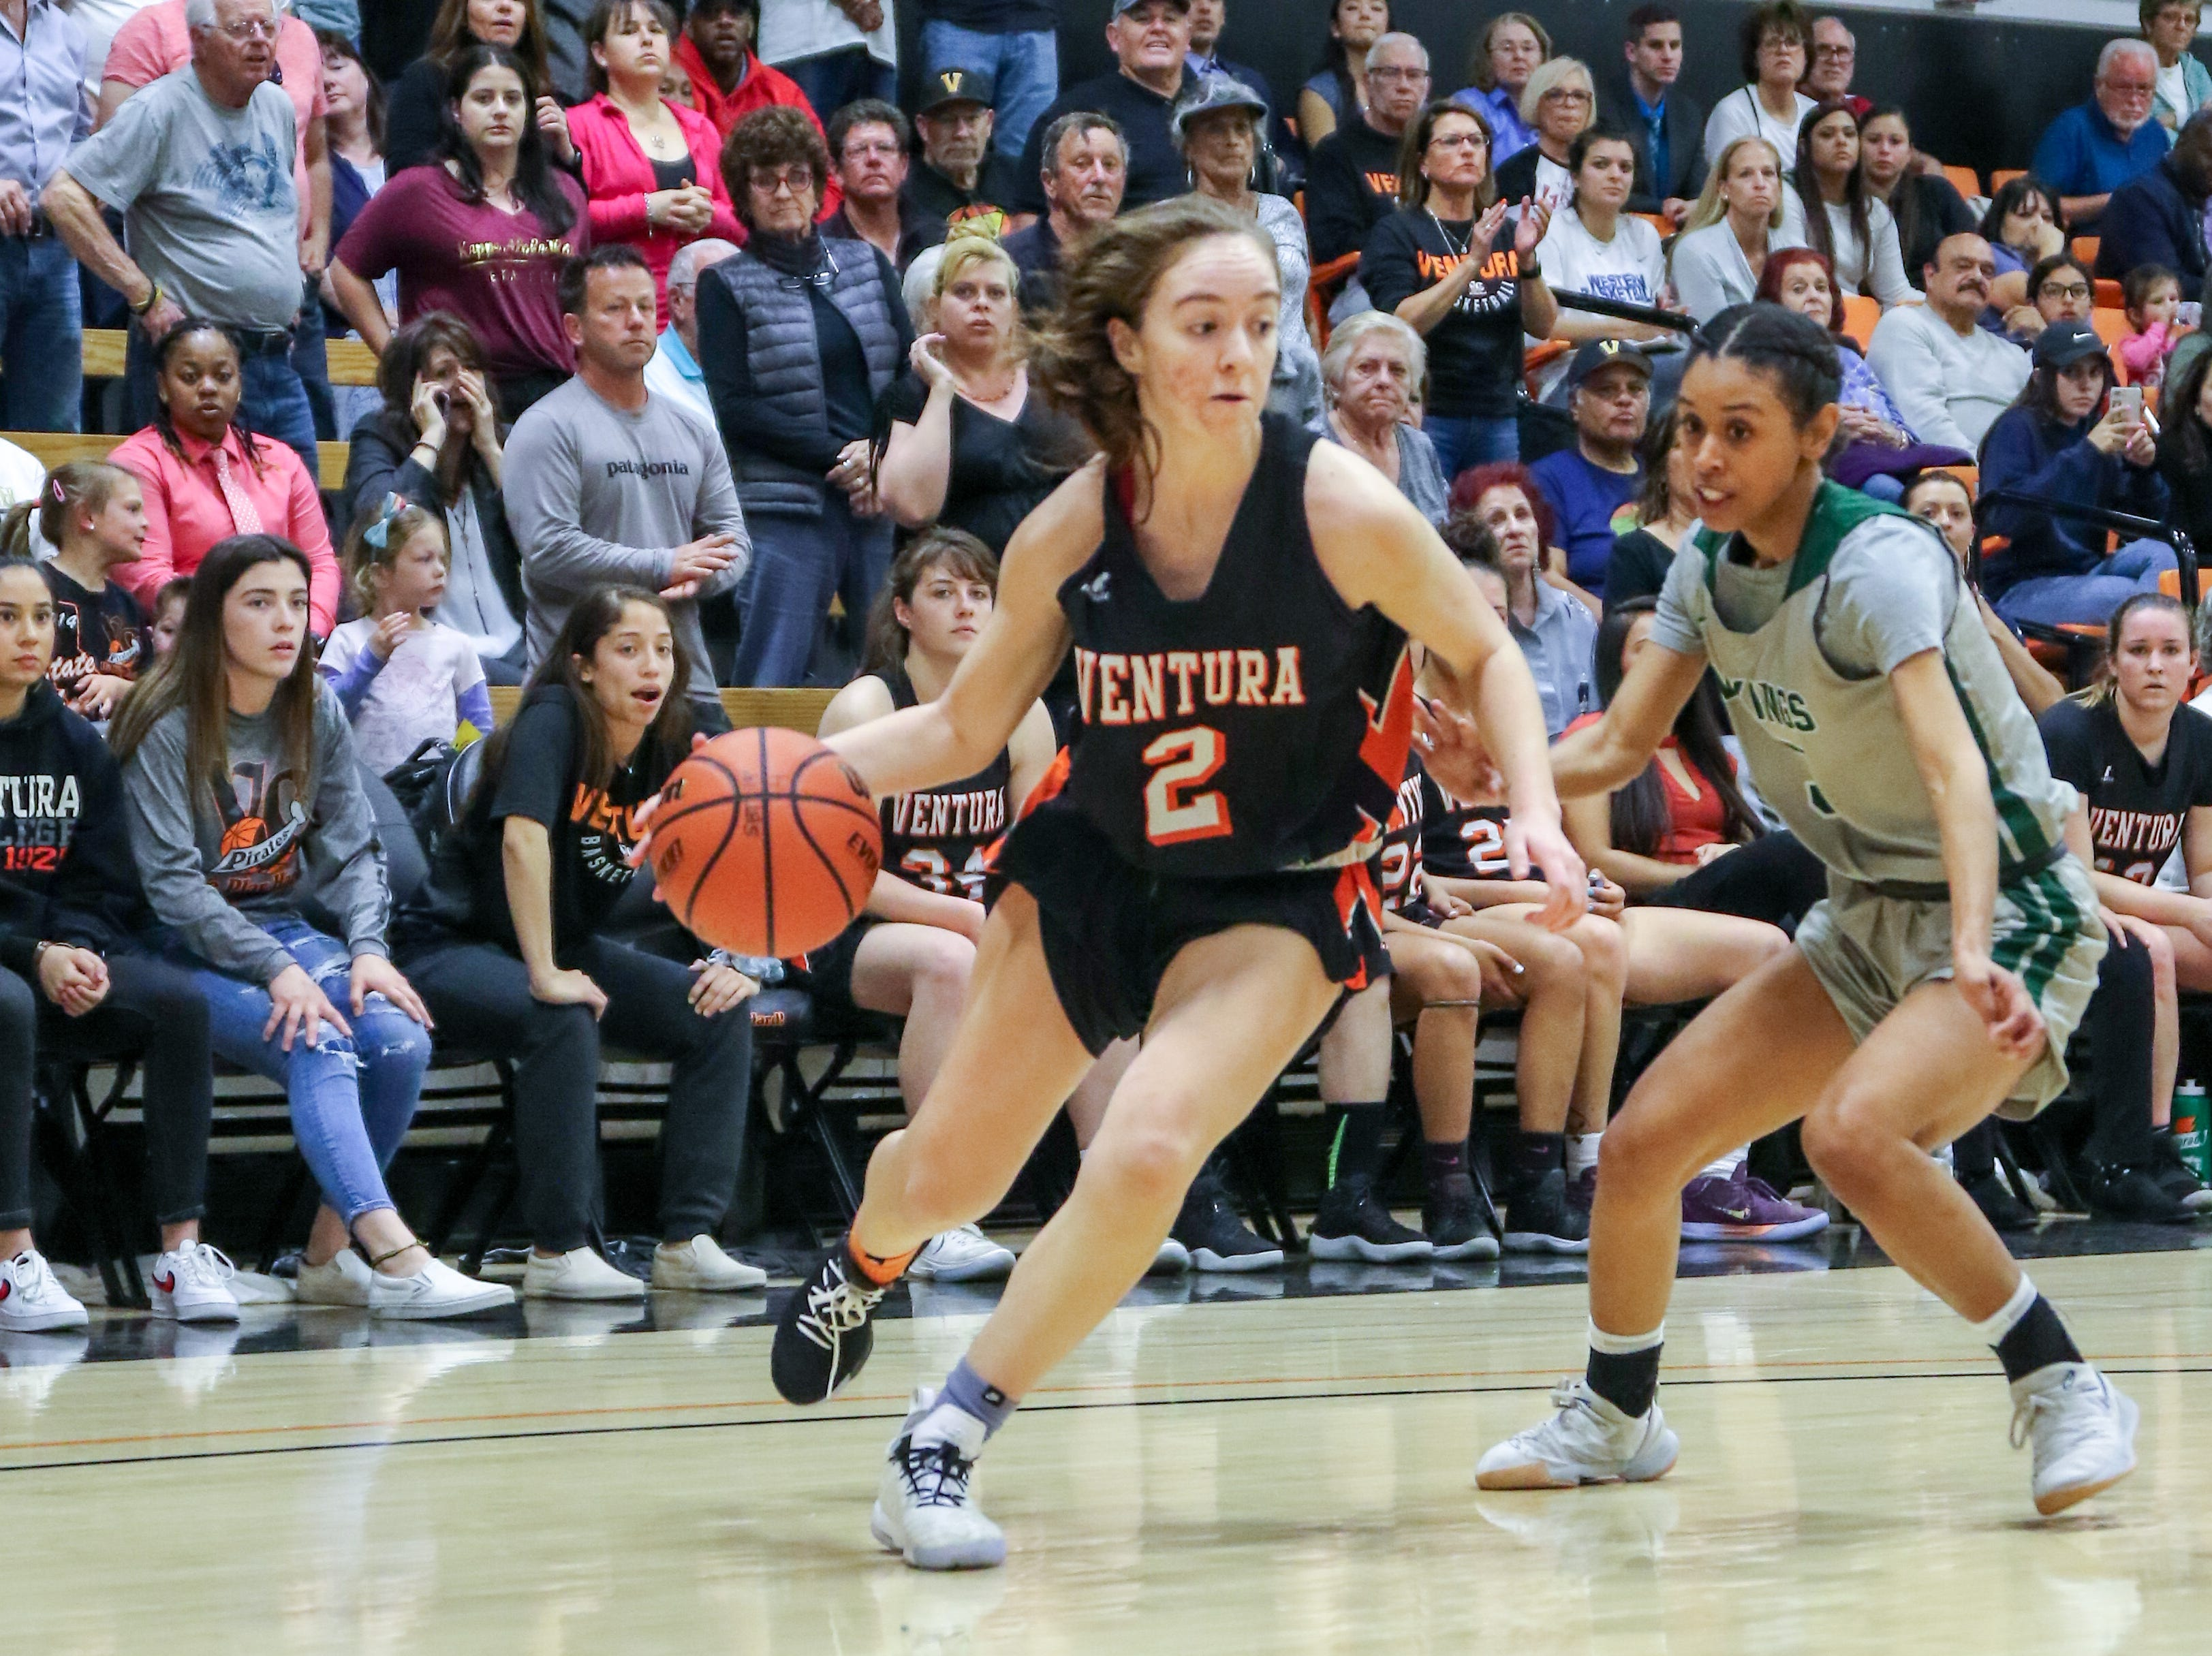 Ventura College freshman Talia Taufaasau drives to the basket during the CCCAA state quarterfinals against Diablo Valley on Friday night in Ventura. Diablo Valley won, 59-57.